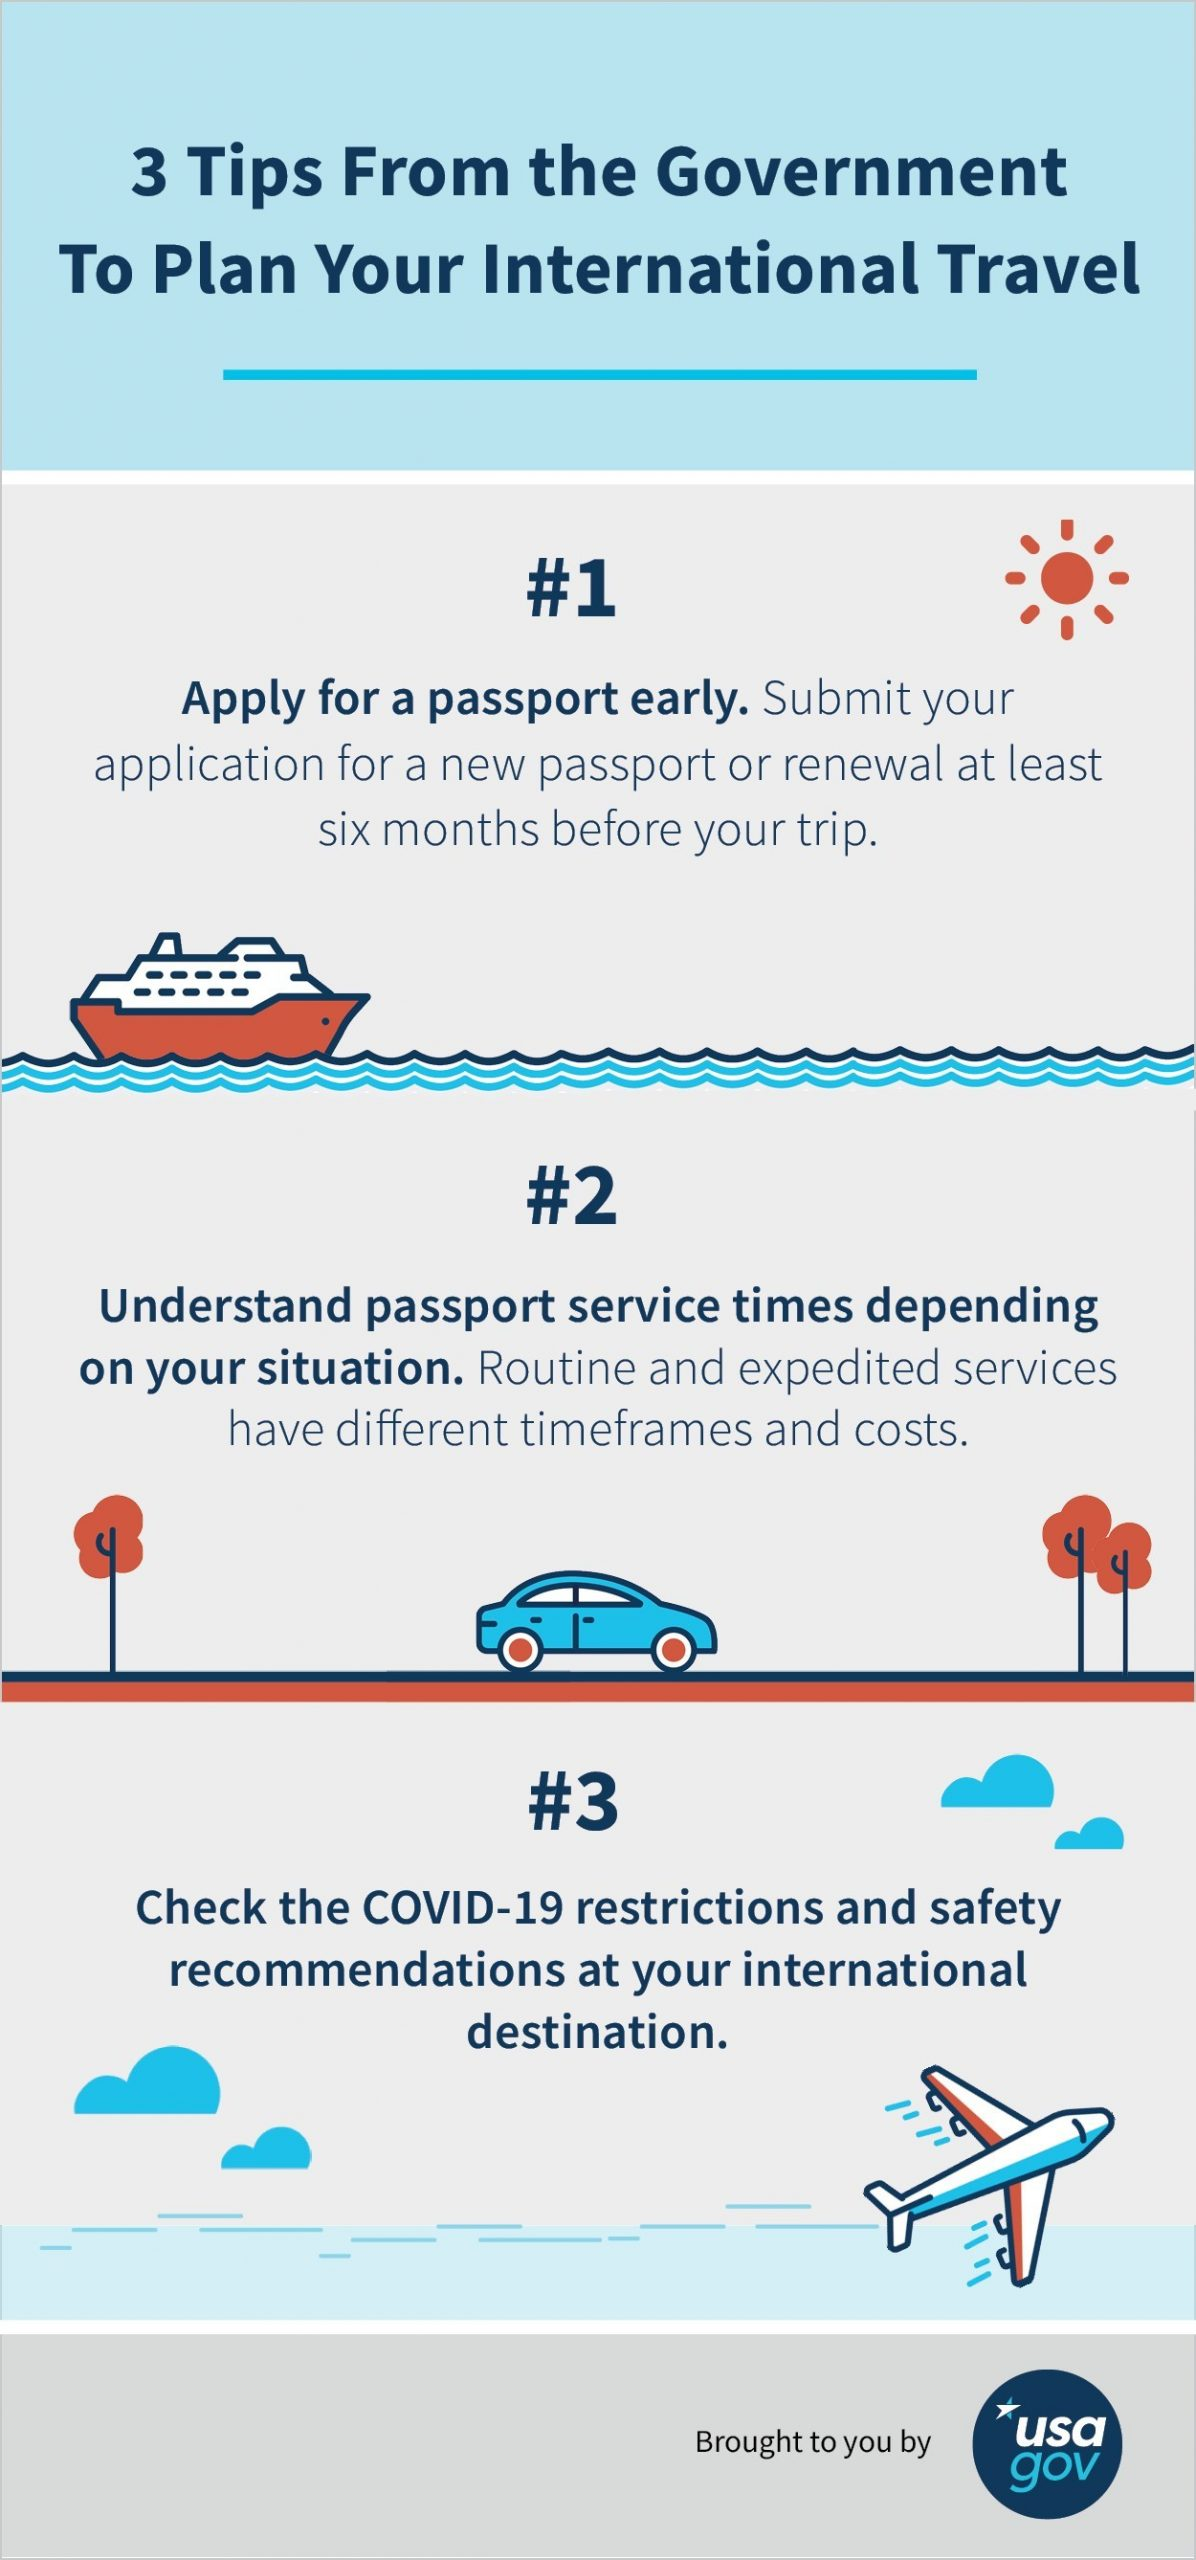 3 Tips From the Government To Plan for International Travel